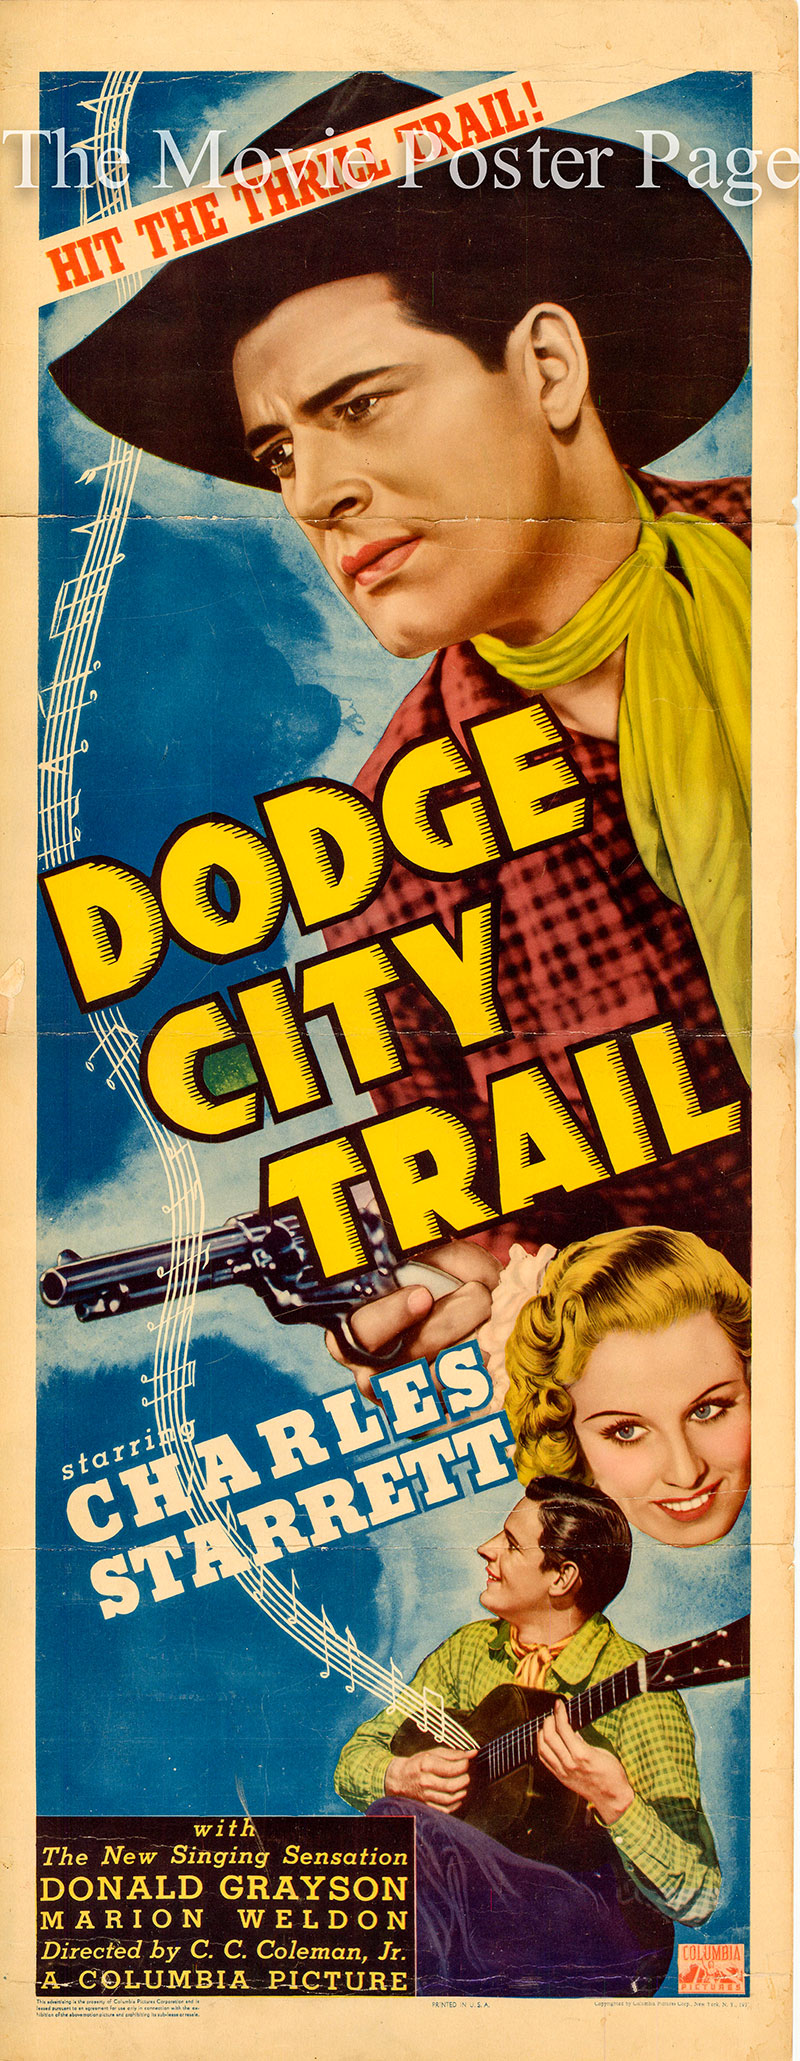 The image shows the  US promotional insert poster for the 1936 Charles C. Coleman film Dodge City Trail, starring Charles Starrett.